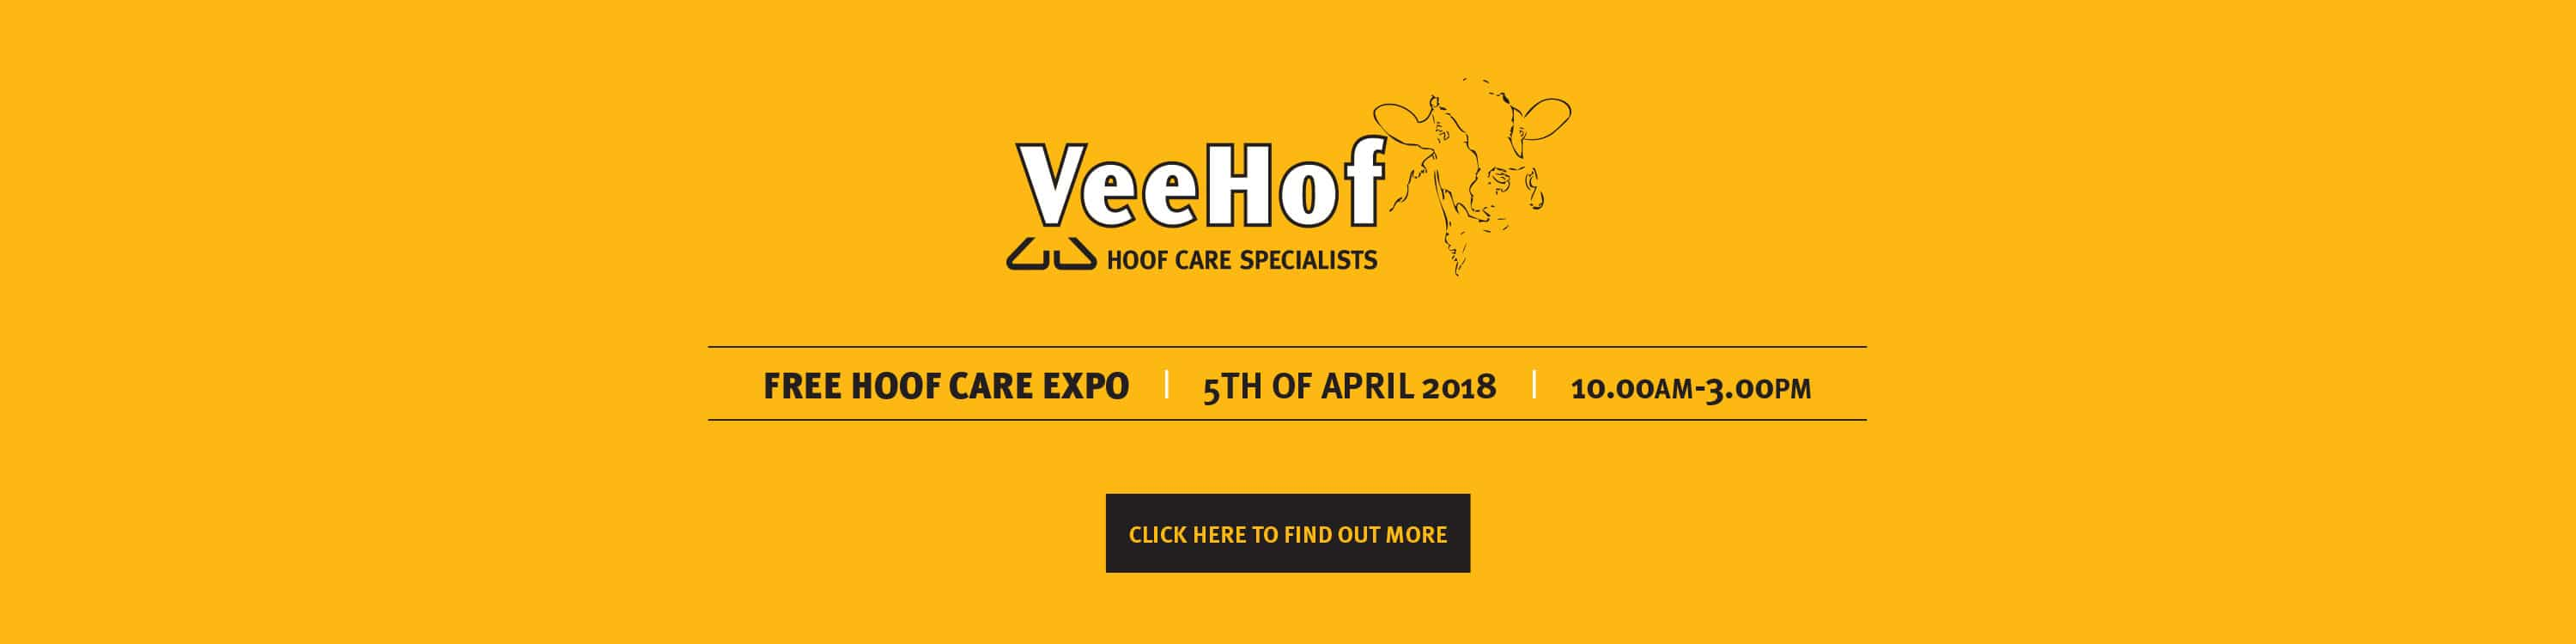 veehof-free-hoof-care-expo